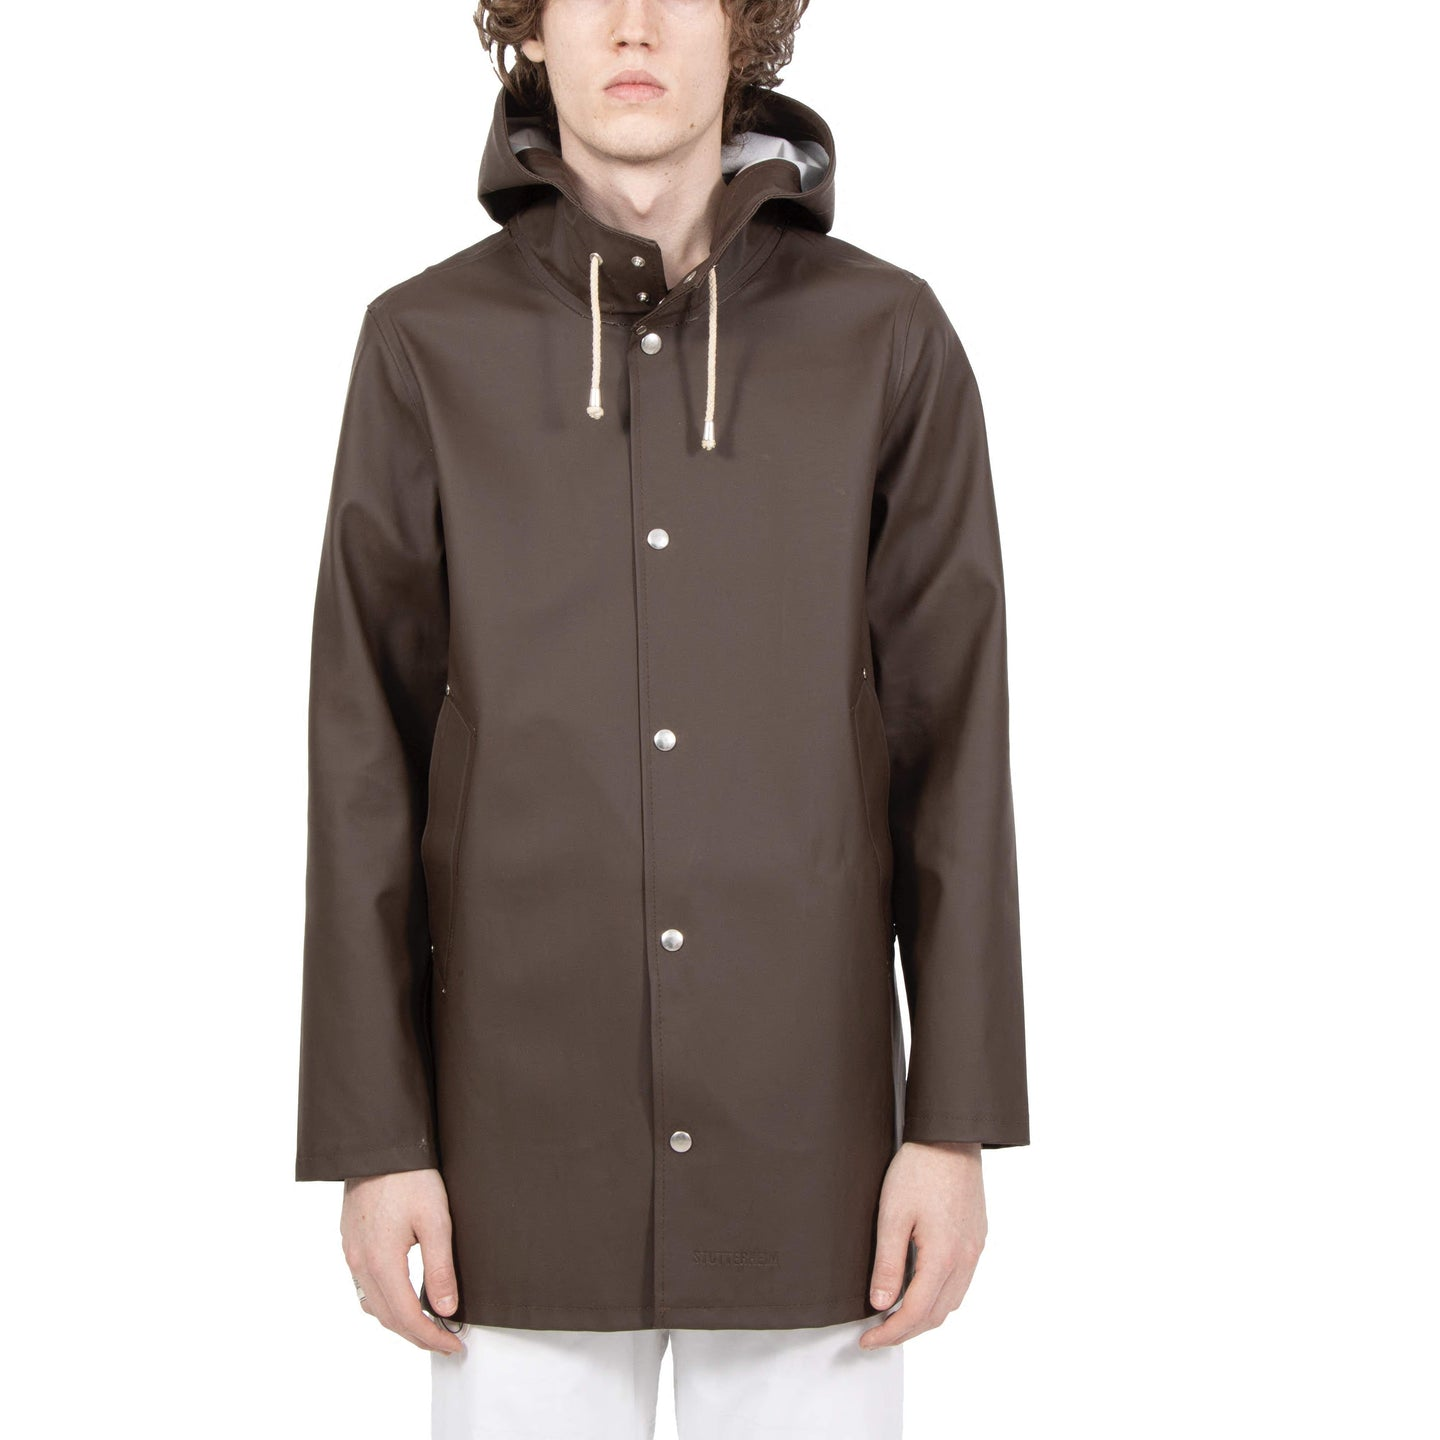 Stutterheim Stockholm Brown Raincoat